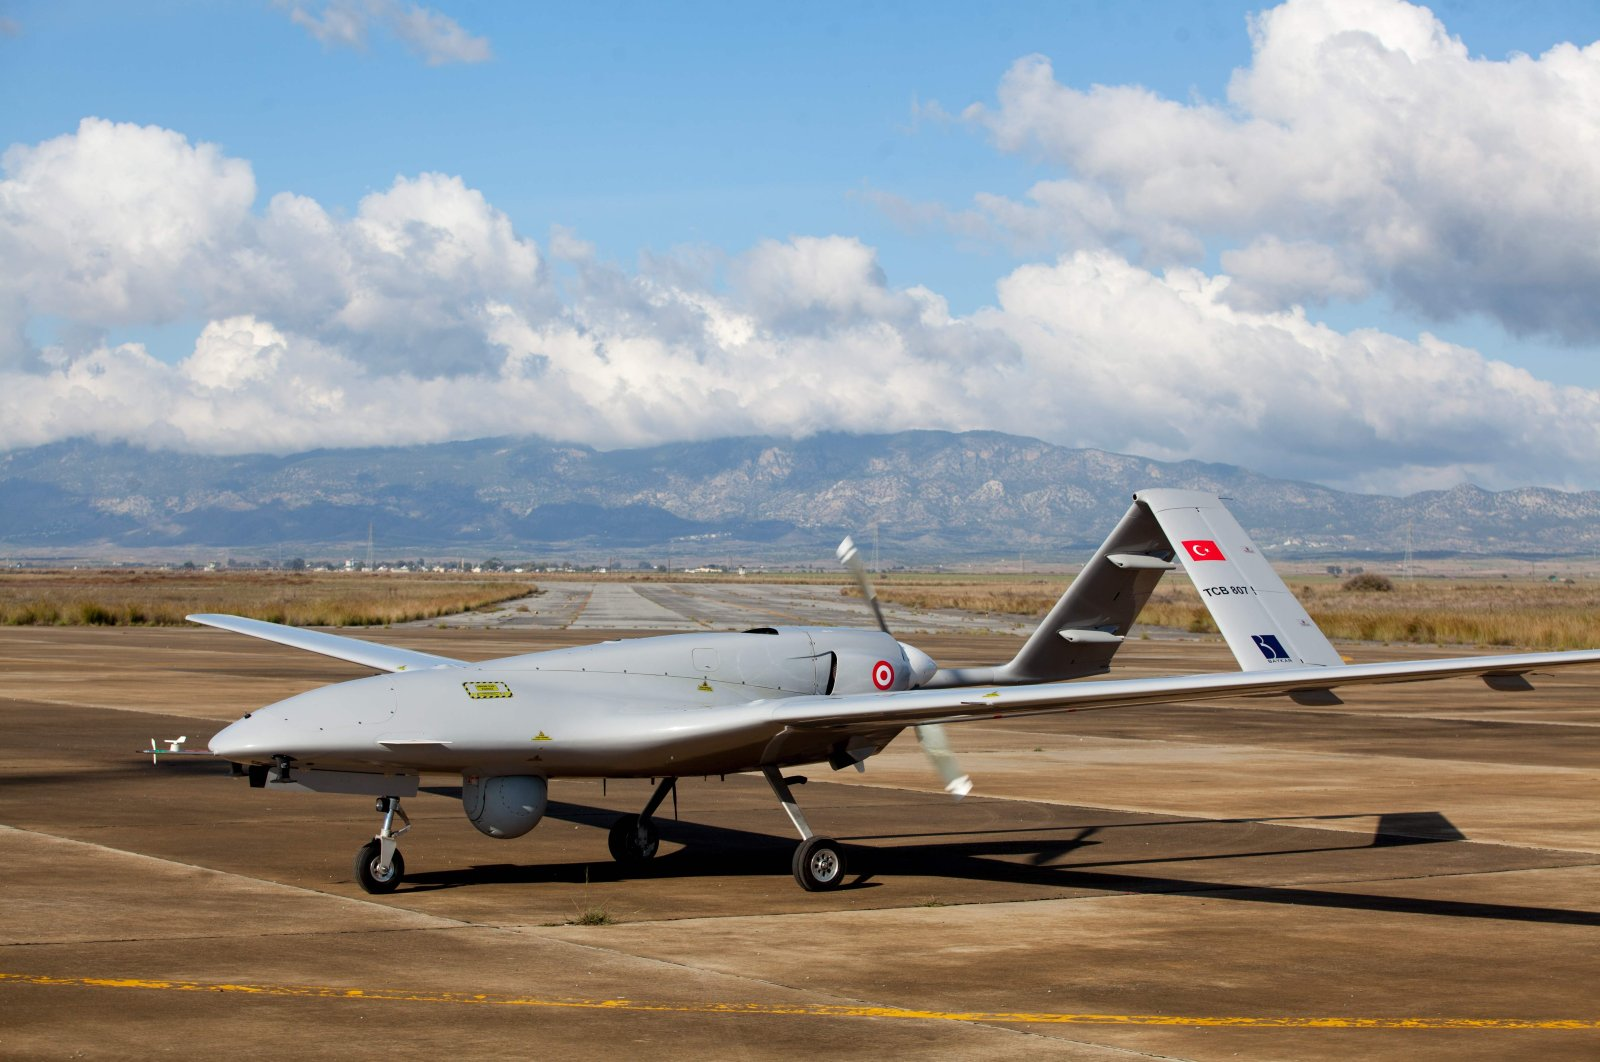 A Bayraktar TB2 drone is pictured at the Geçitkale military air base near Gazimağusa (Famagusta) in the Turkish Republic of Northern Cyprus (TRNC), Dec. 16, 2019. (AFP Photo)